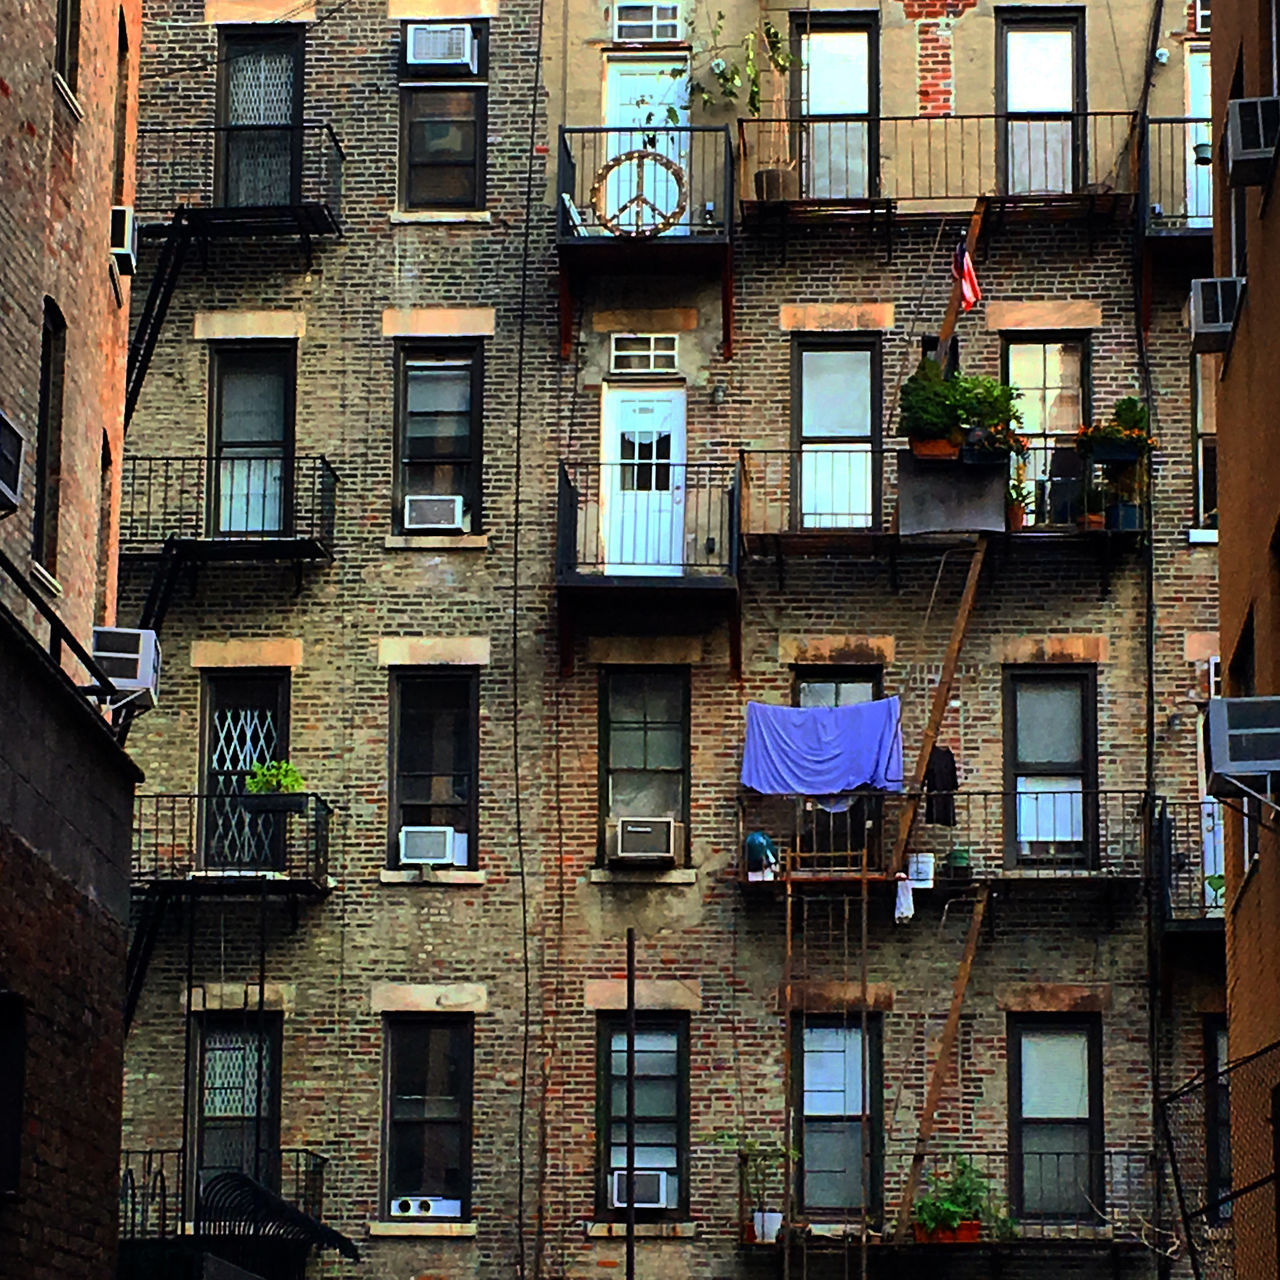 Little Italy Air Conditioner Architecture Balcony Building Exterior Built Structure City Day Little Italy NYC Low Angle View No People Outdoors Residential Building Window